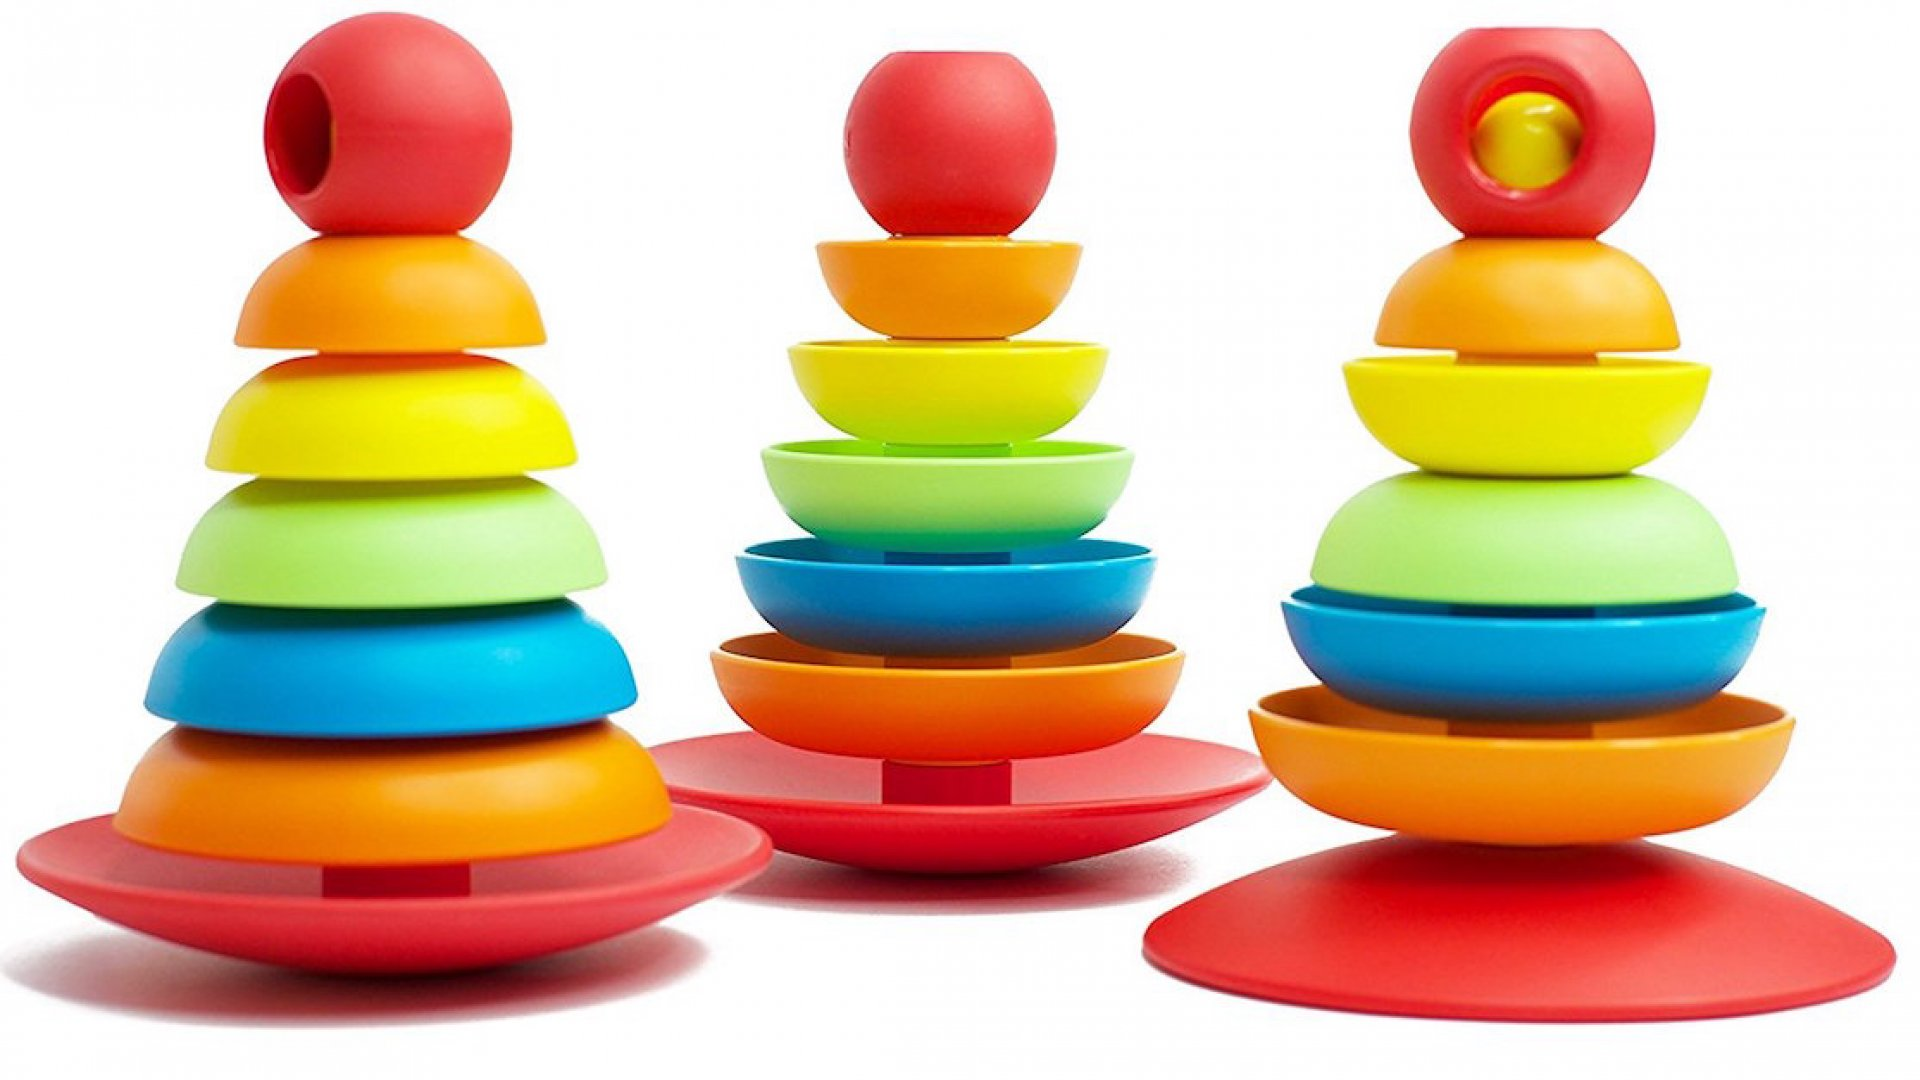 The Bioserie Toys 2 in 1 Stacker, made from bioplastic